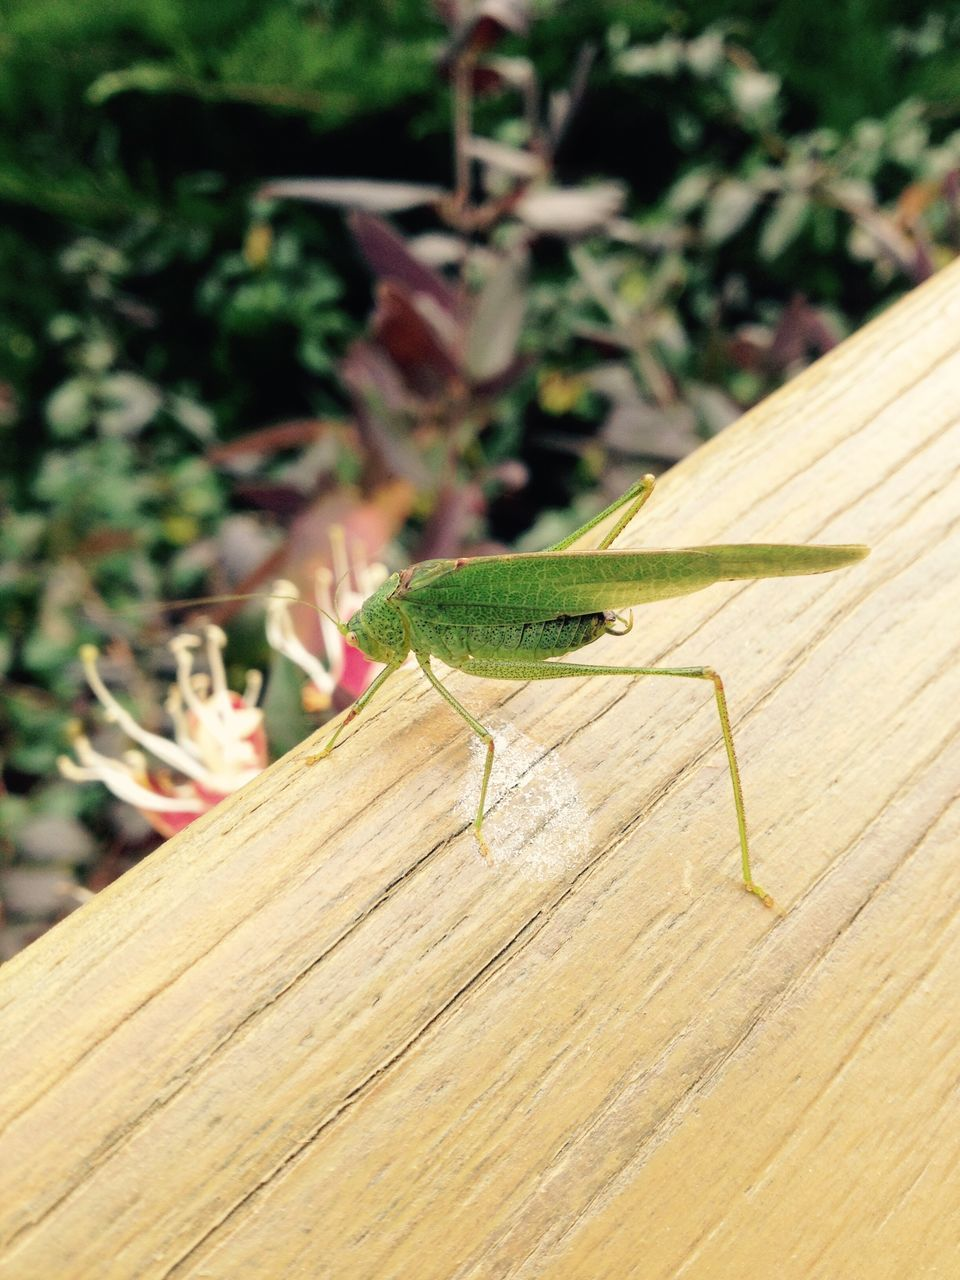 animals in the wild, one animal, animal themes, insect, green color, animal wildlife, wood - material, no people, nature, focus on foreground, grasshopper, day, close-up, outdoors, plant, growth, perching